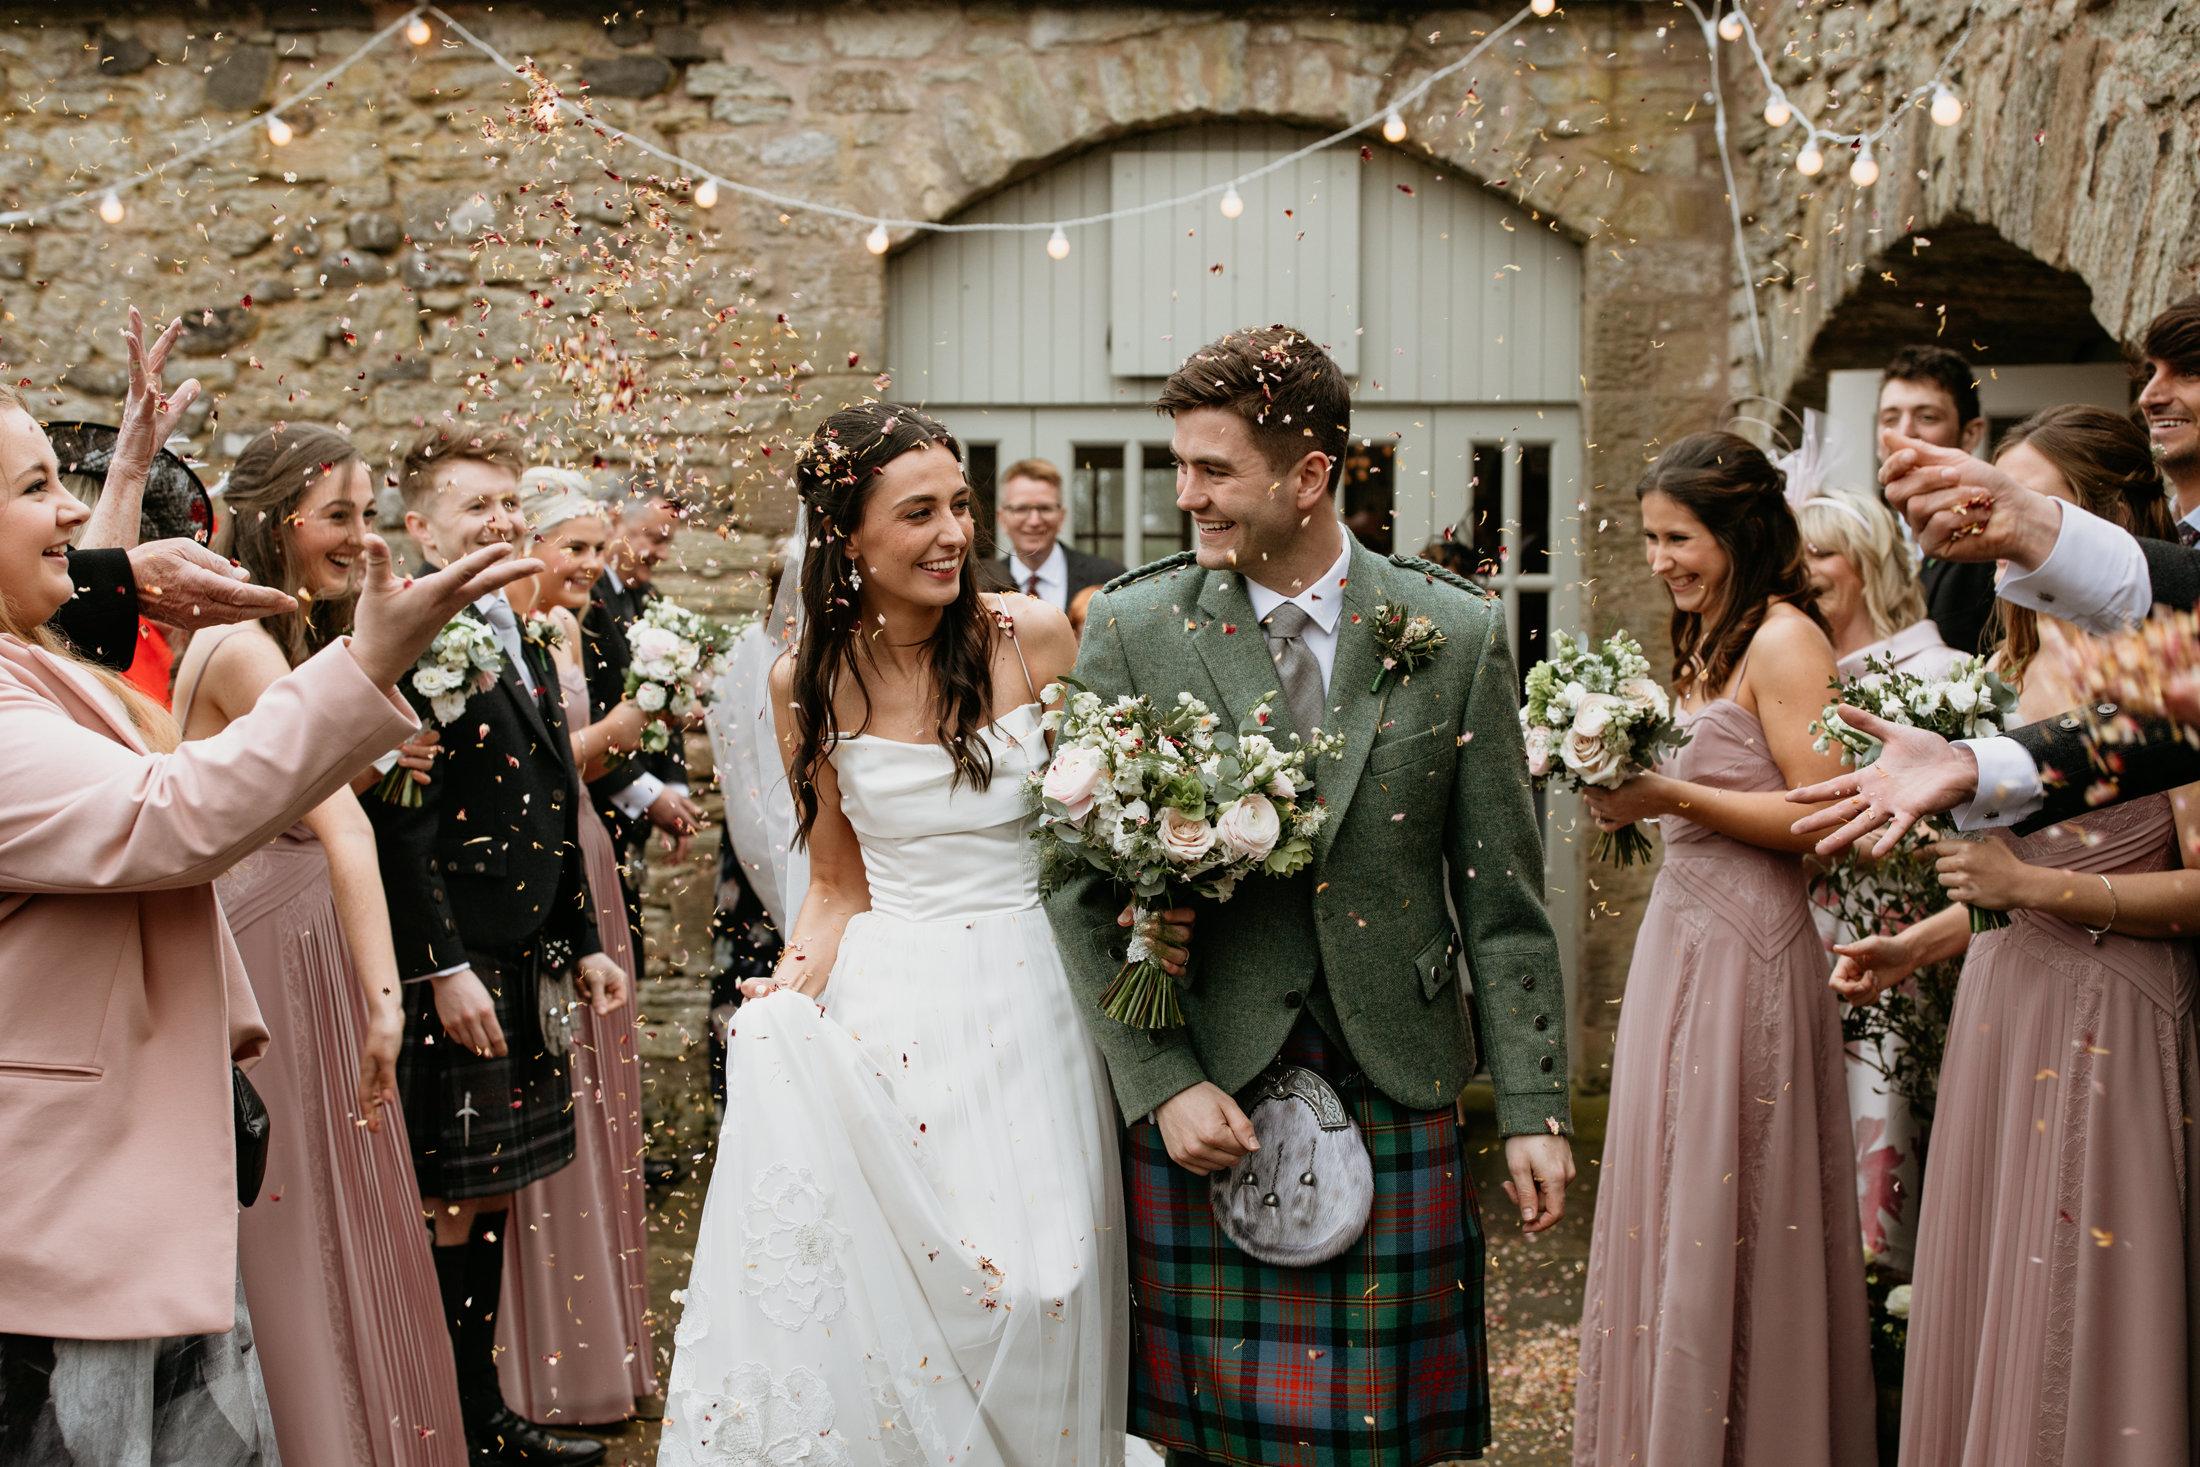 337-Brodie-Lewis-Wedderburn-Castle-Barns-Duns-Lianne-Mackay-Wedding-Photography-Edinburgh-Glasgow-Scotland.jpg